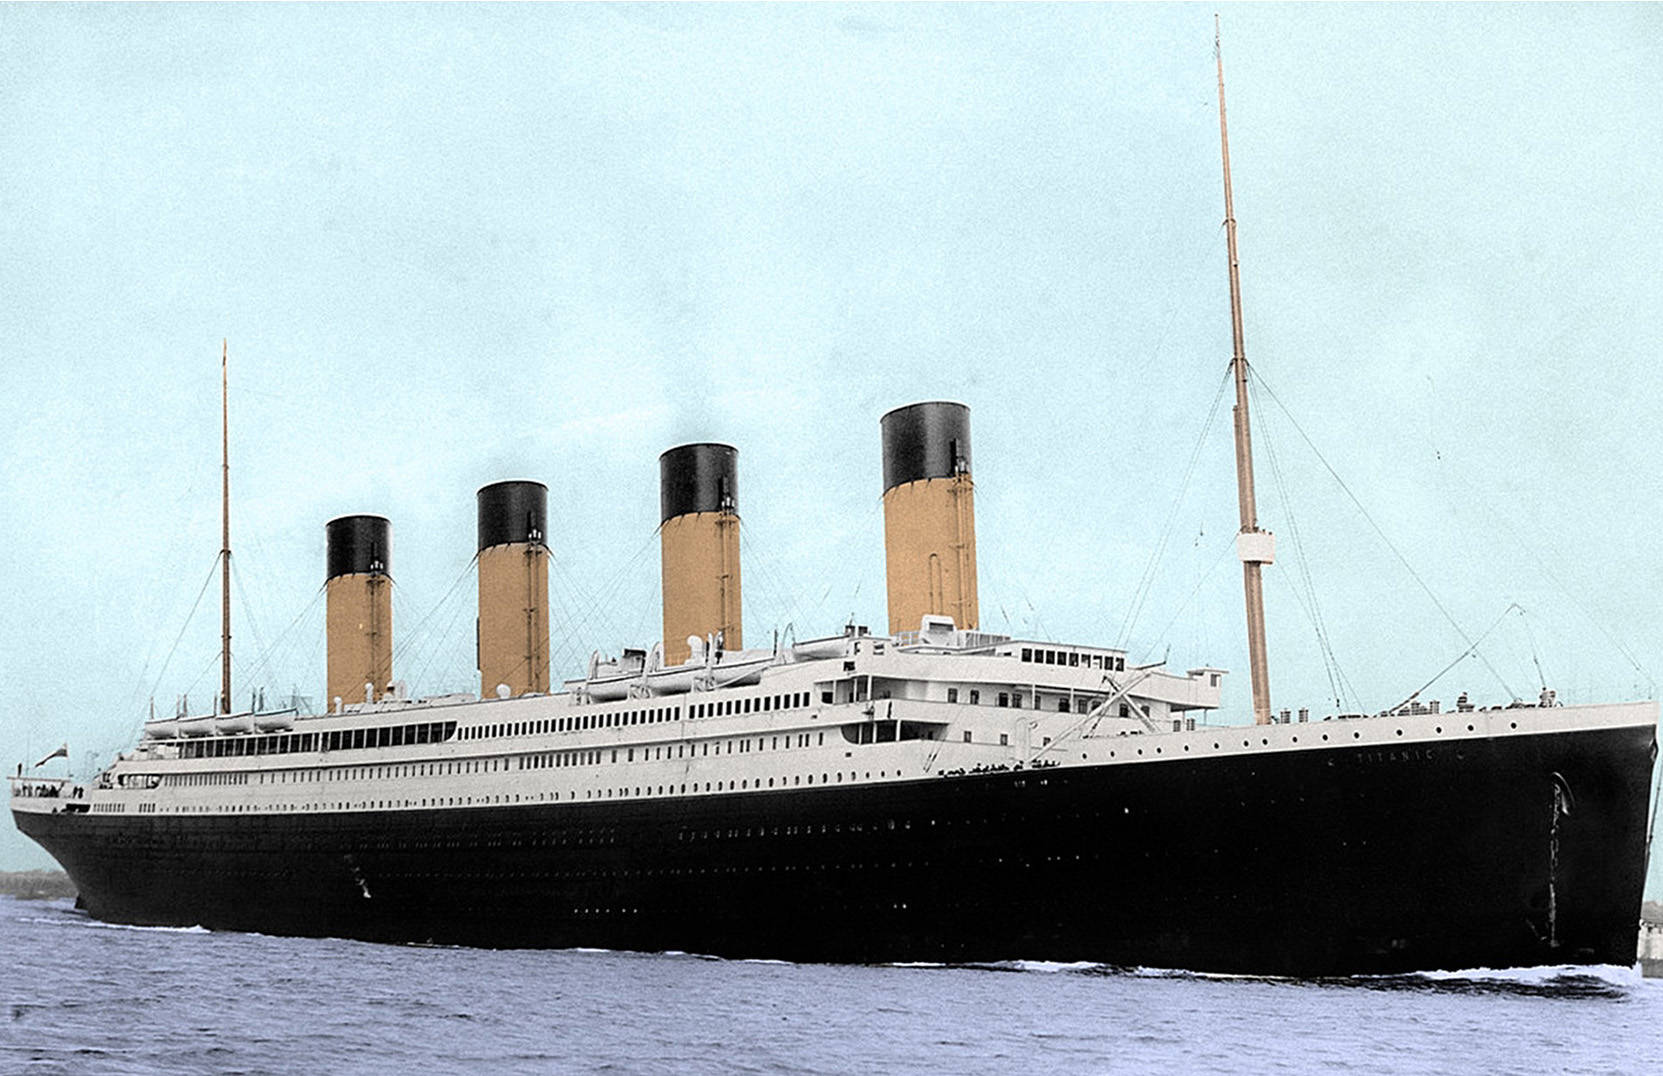 Titanic was the largest and most luxurious ship in the world. Photo provided and colourized by Jiri Ferdinand.